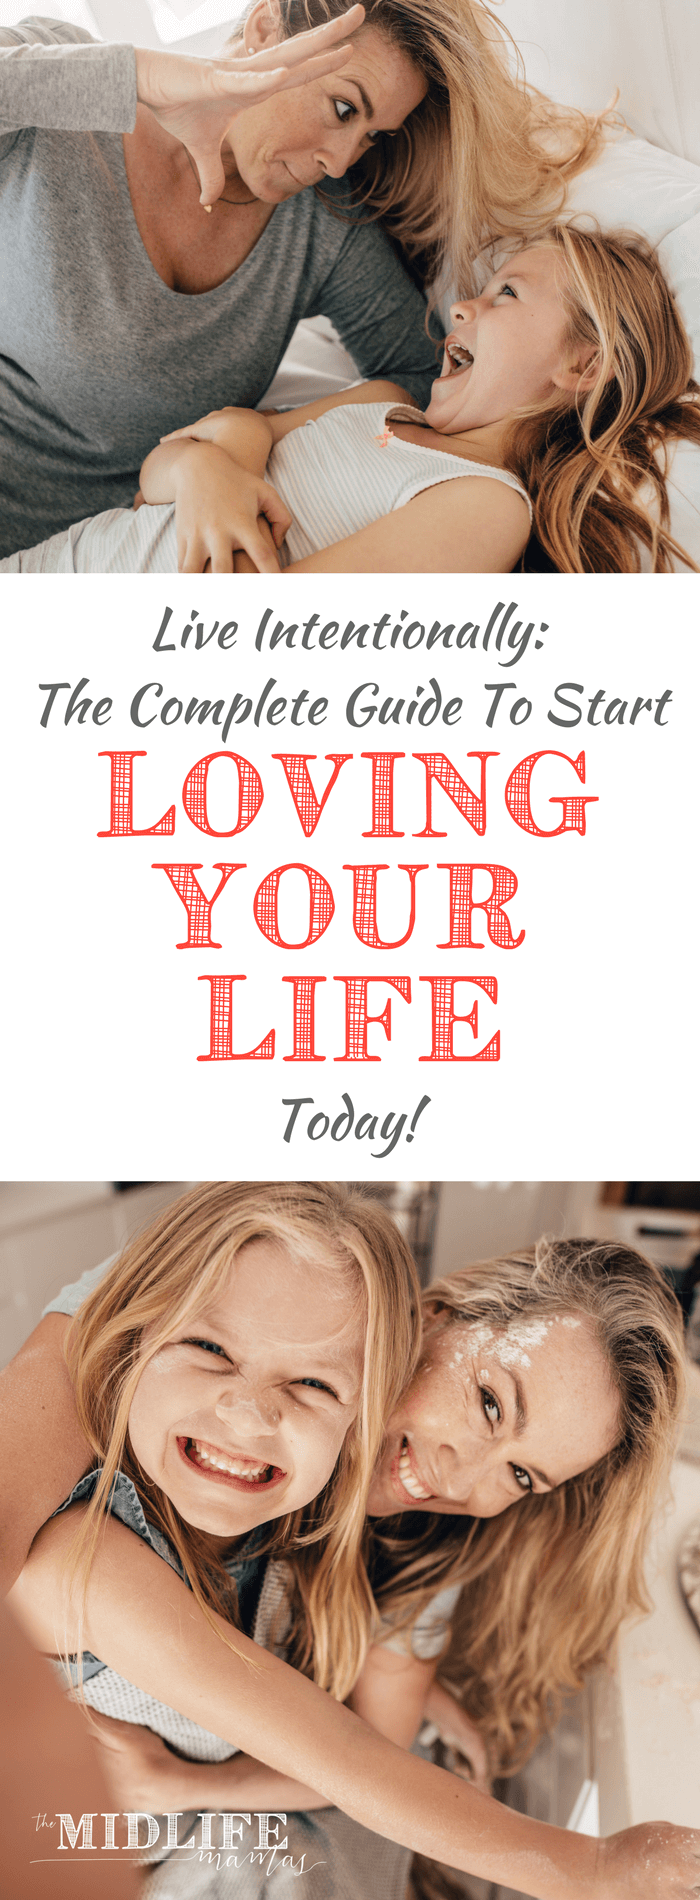 So many of us strive to be living with purpose. The simple wisdom found in living intentionally helps to calm the day to day chaos of a busy lives. There are terrific ideas, inspiration, and tips for women and families learning to live an intentional, mindful, and purposeful life. #intentional #simplelife www.themidlifemamas.com